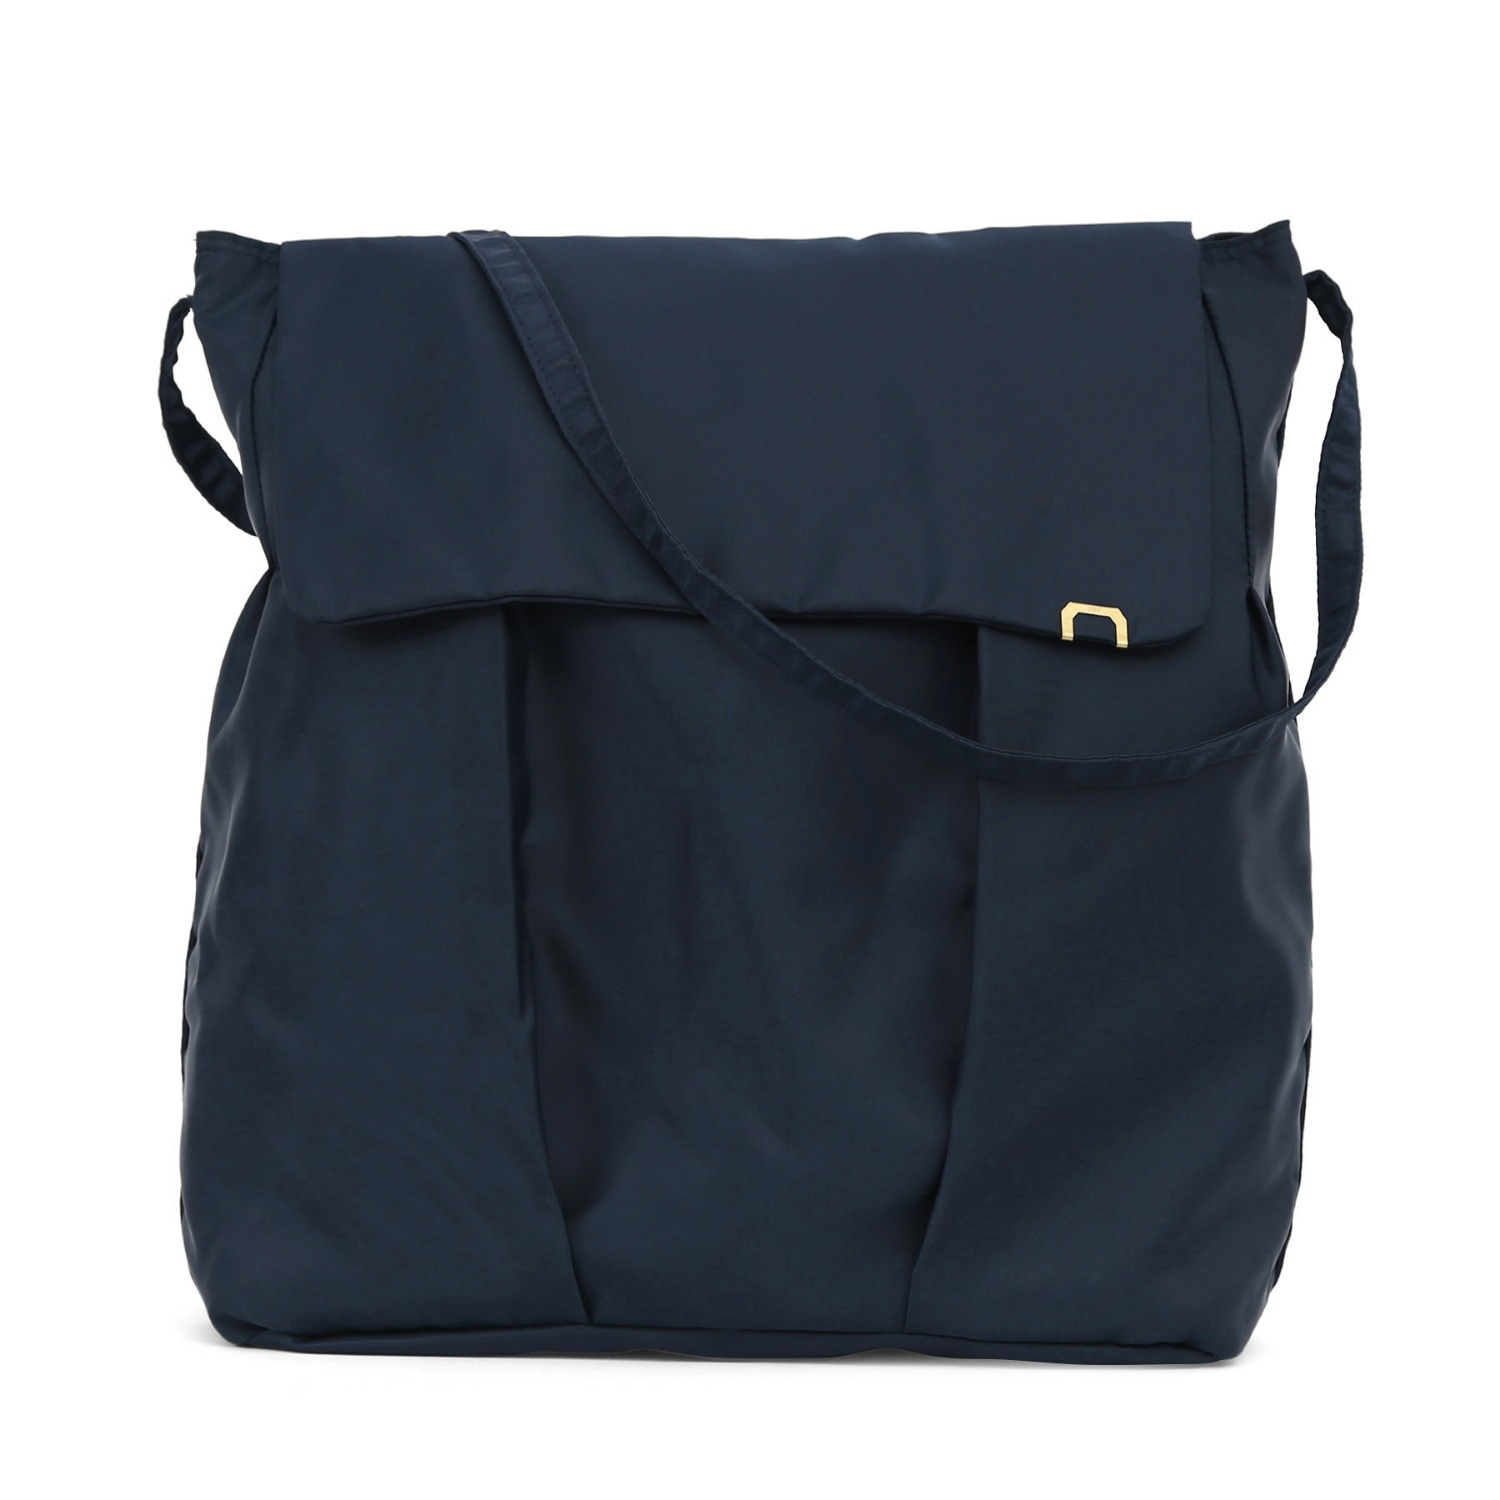 LADDER BAG / WRINKLE / N TWILL / NAVY